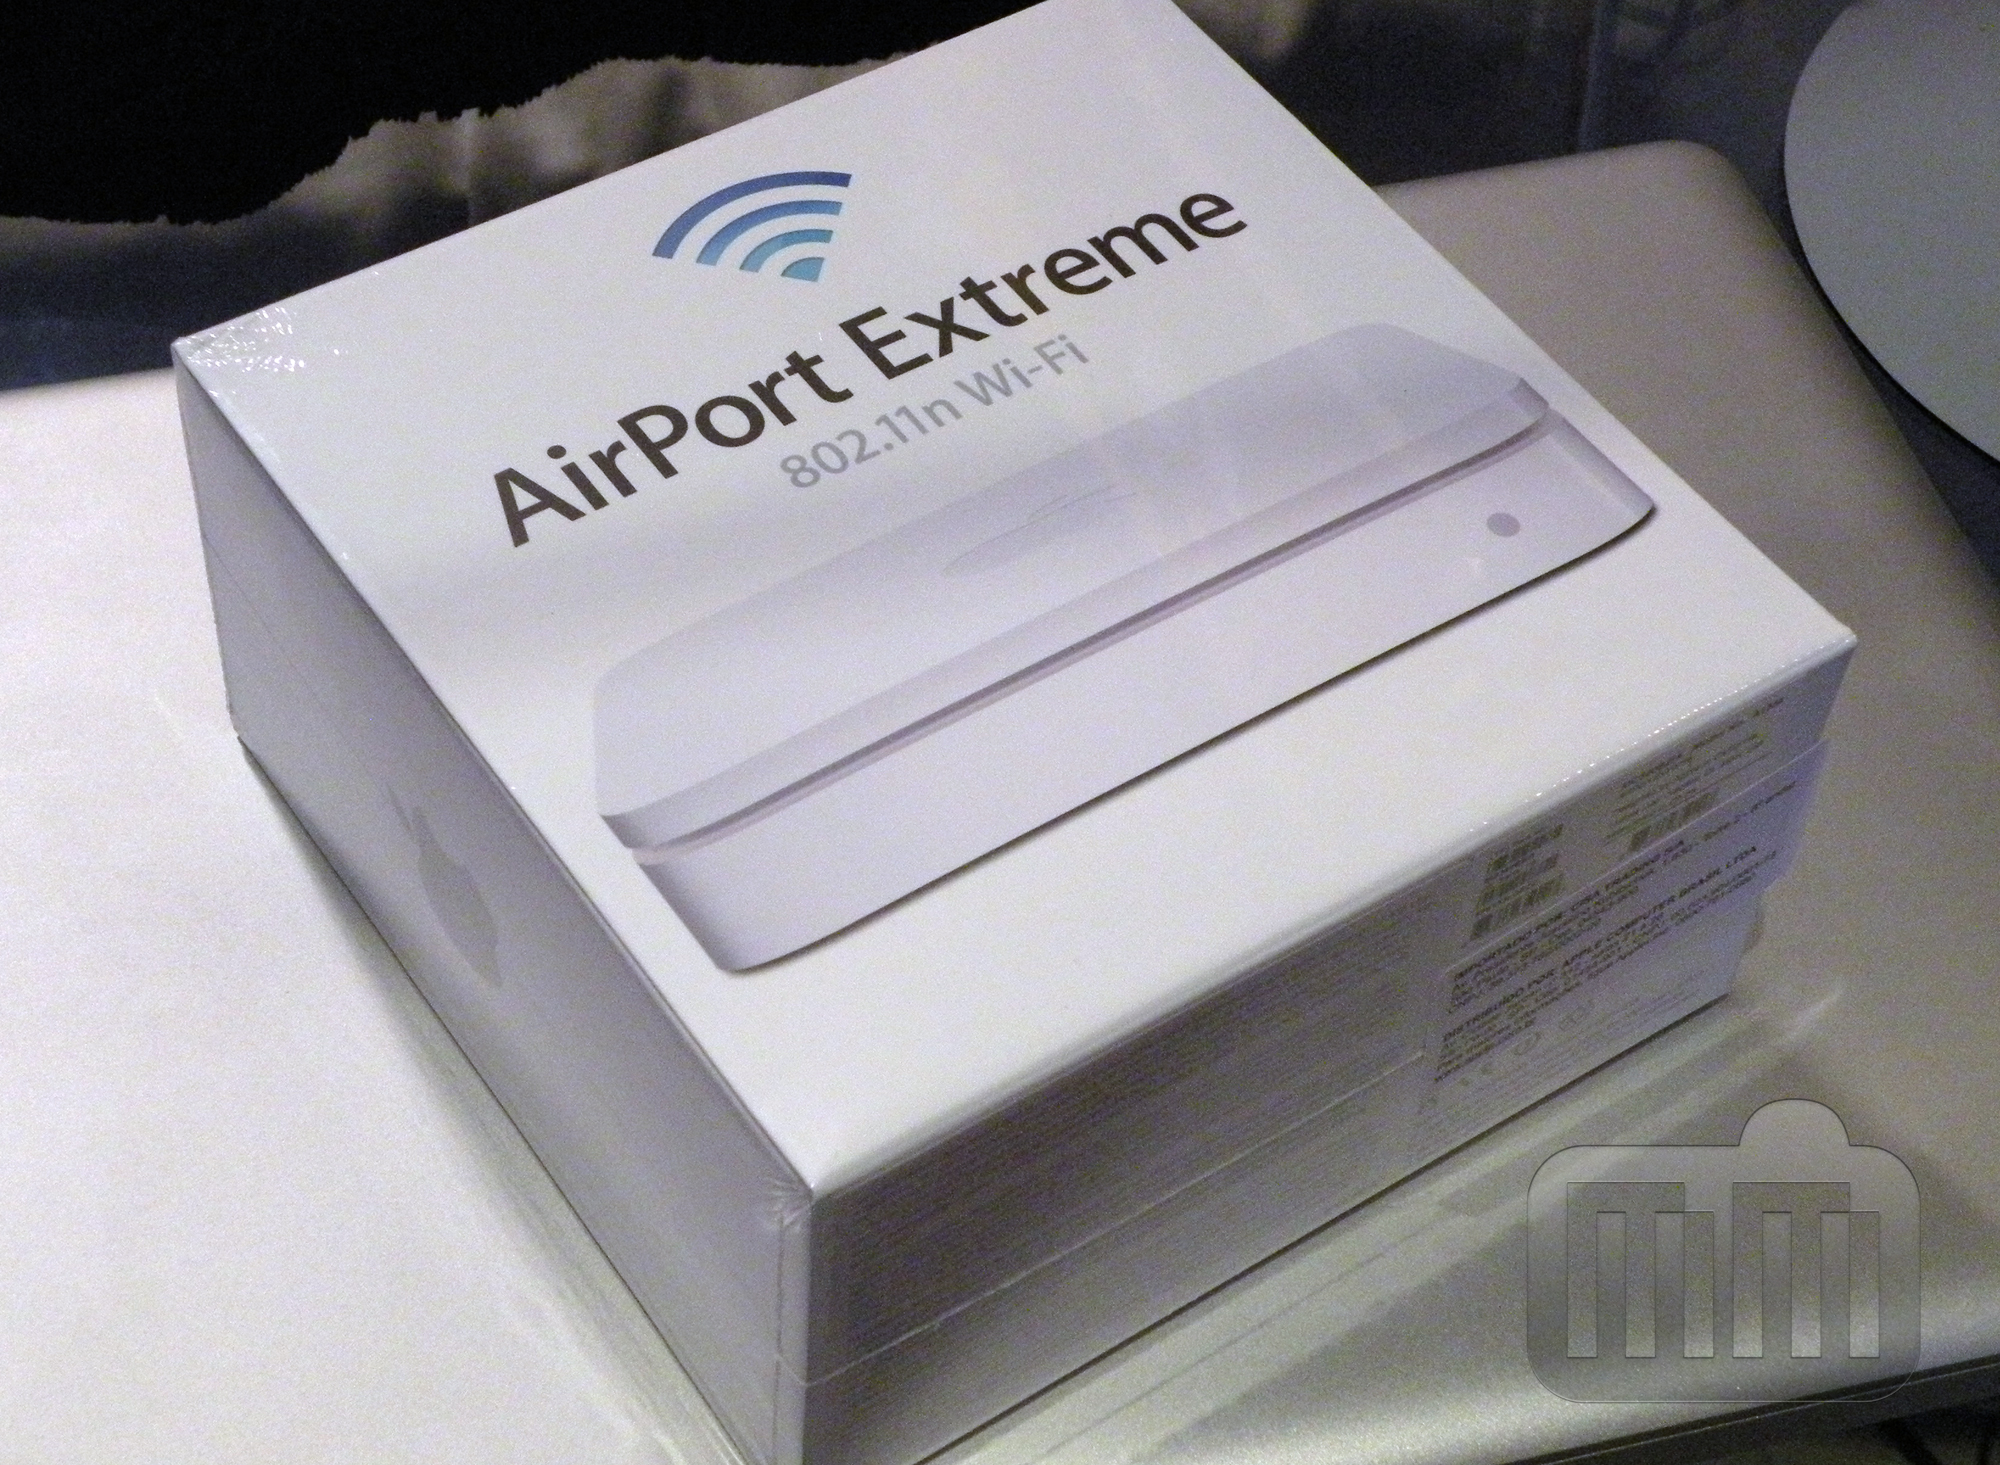 Base Wi-Fi AirPort Extreme 802.11n